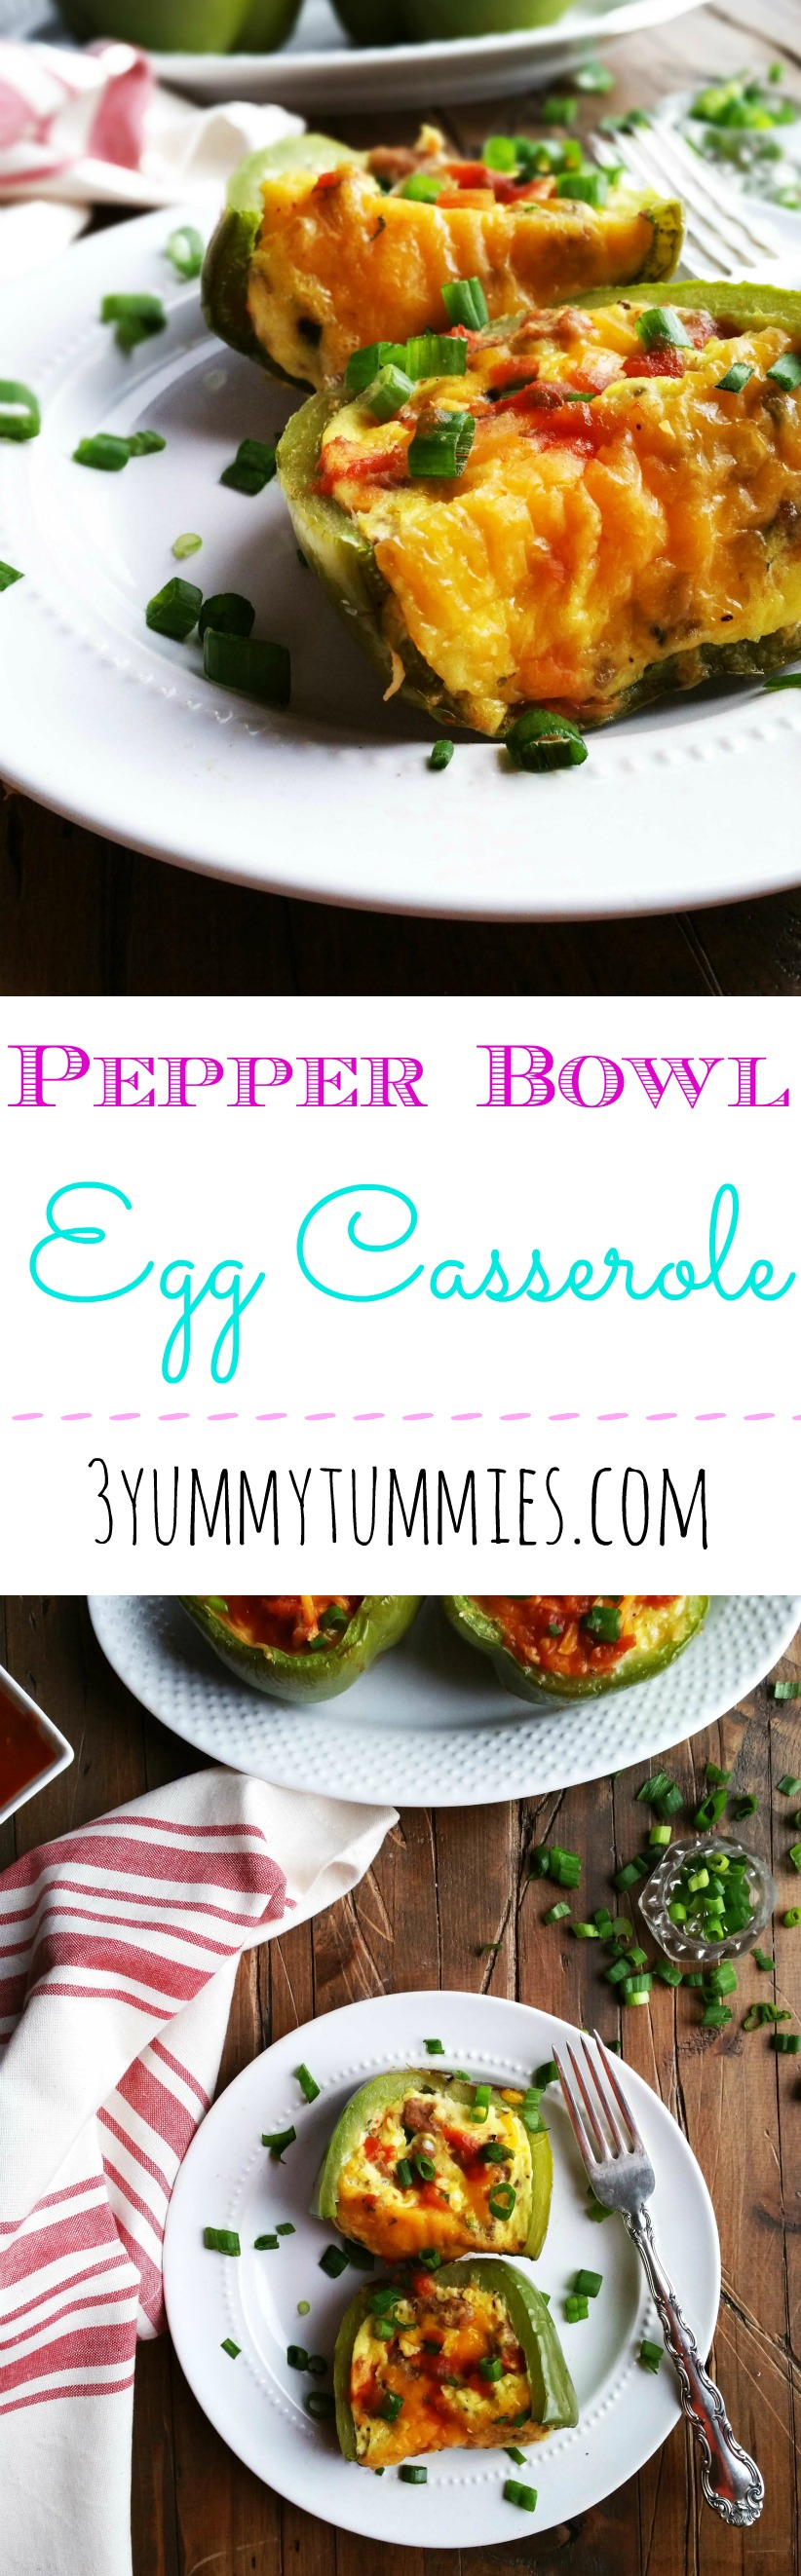 Pepper Bowl Egg Casserole